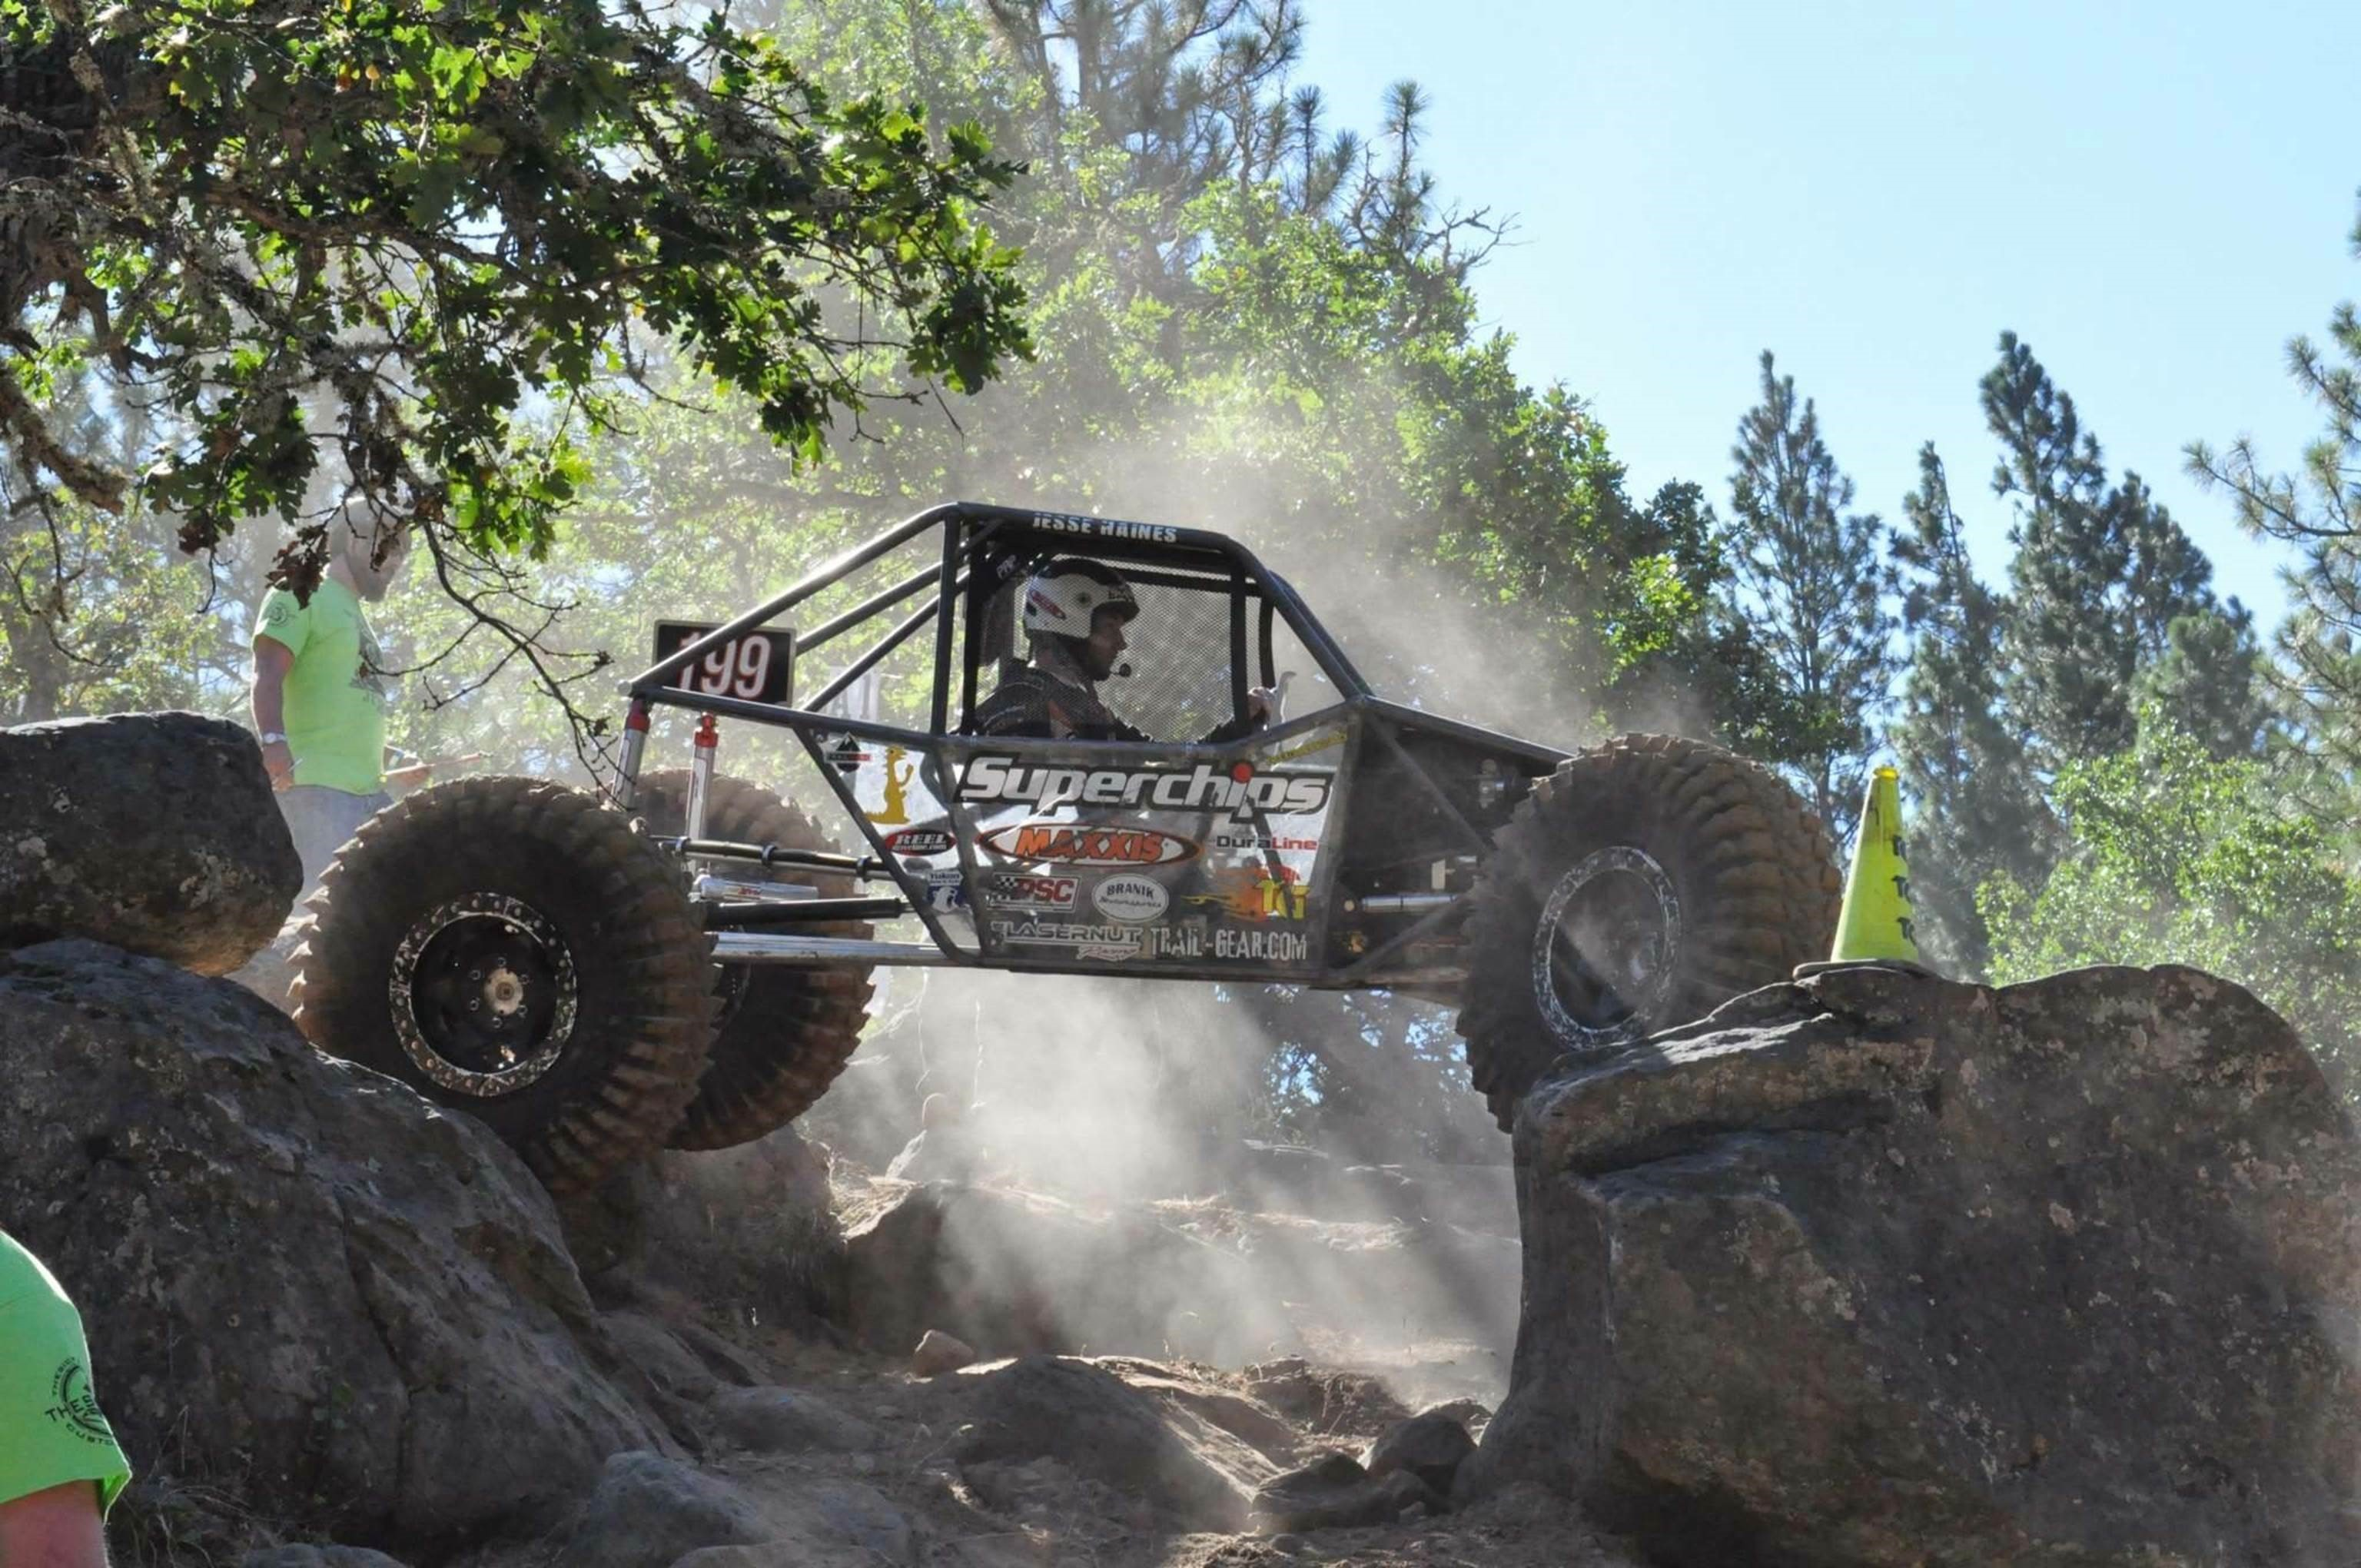 Pirate4x4com The Largest Off Roading And 4x4 Website In The World